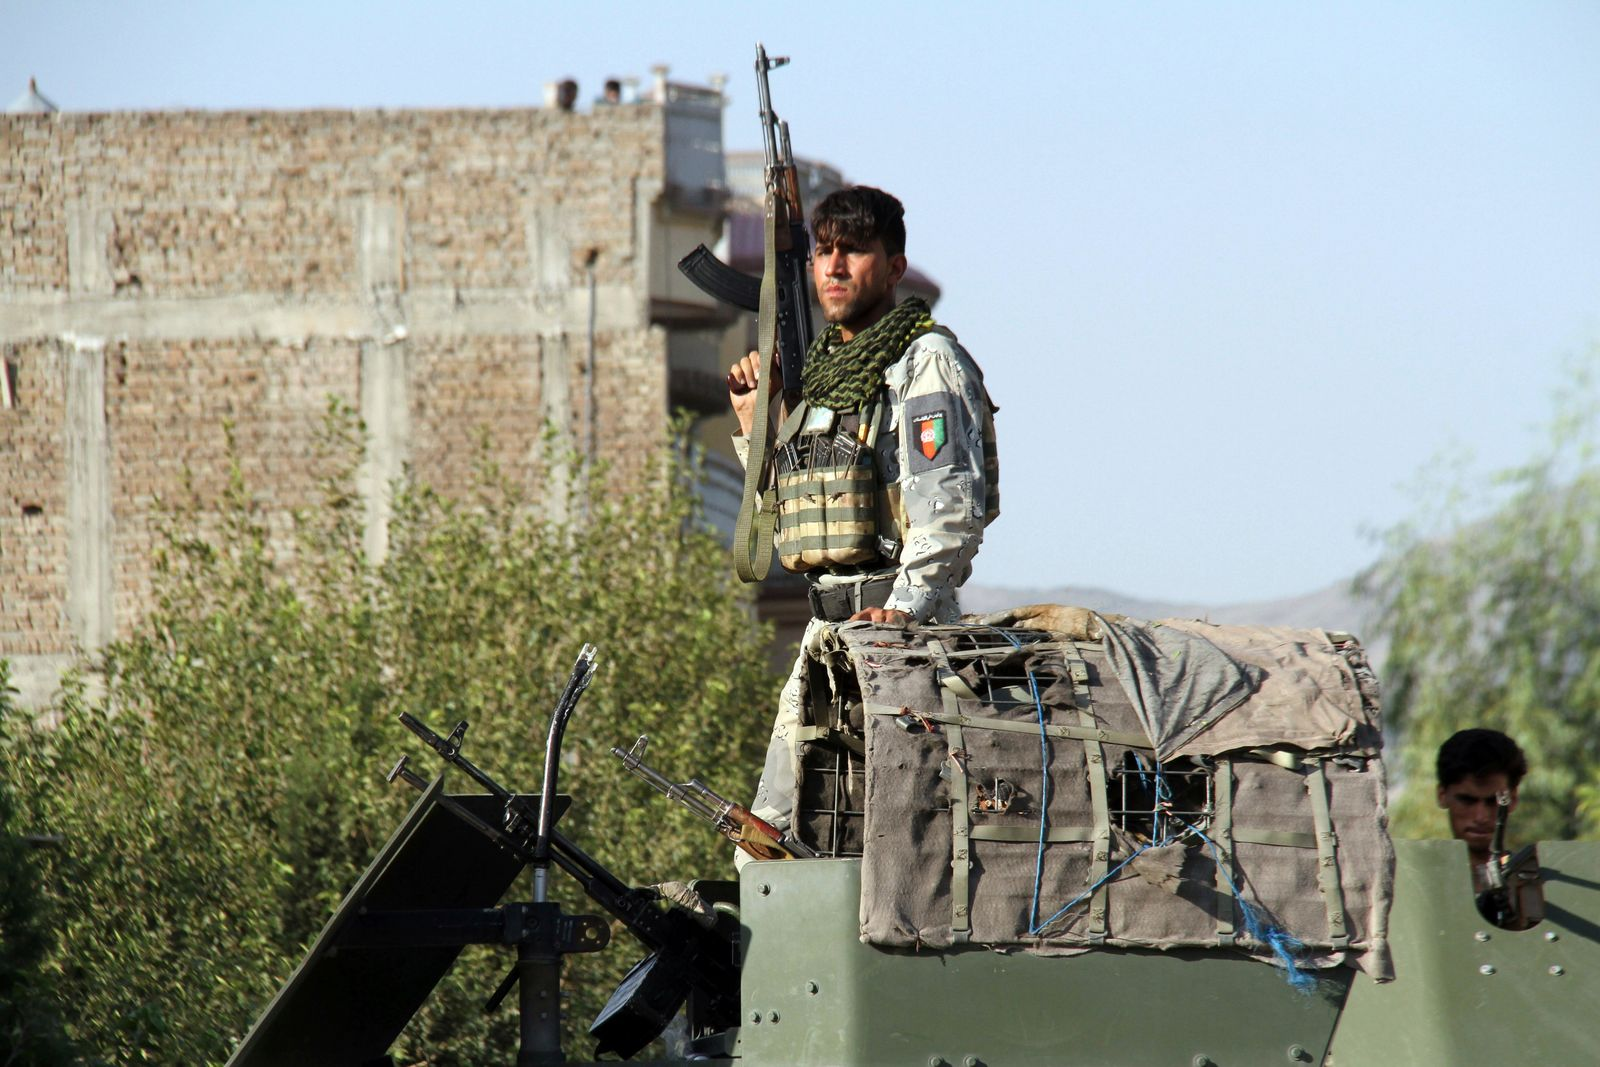 Afghan security forces arrive near the site of a suicide bombing and gun battle as militants attempted to storm a government office, in Jalalabad, the provincial capital of eastern Afghanistan, Wednesday, Sept. 18, 2019. The violence comes as Afghanistan prepares for presidential elections on Sept. 28, a vote the Taliban vehemently oppose. (AP Photo)wld